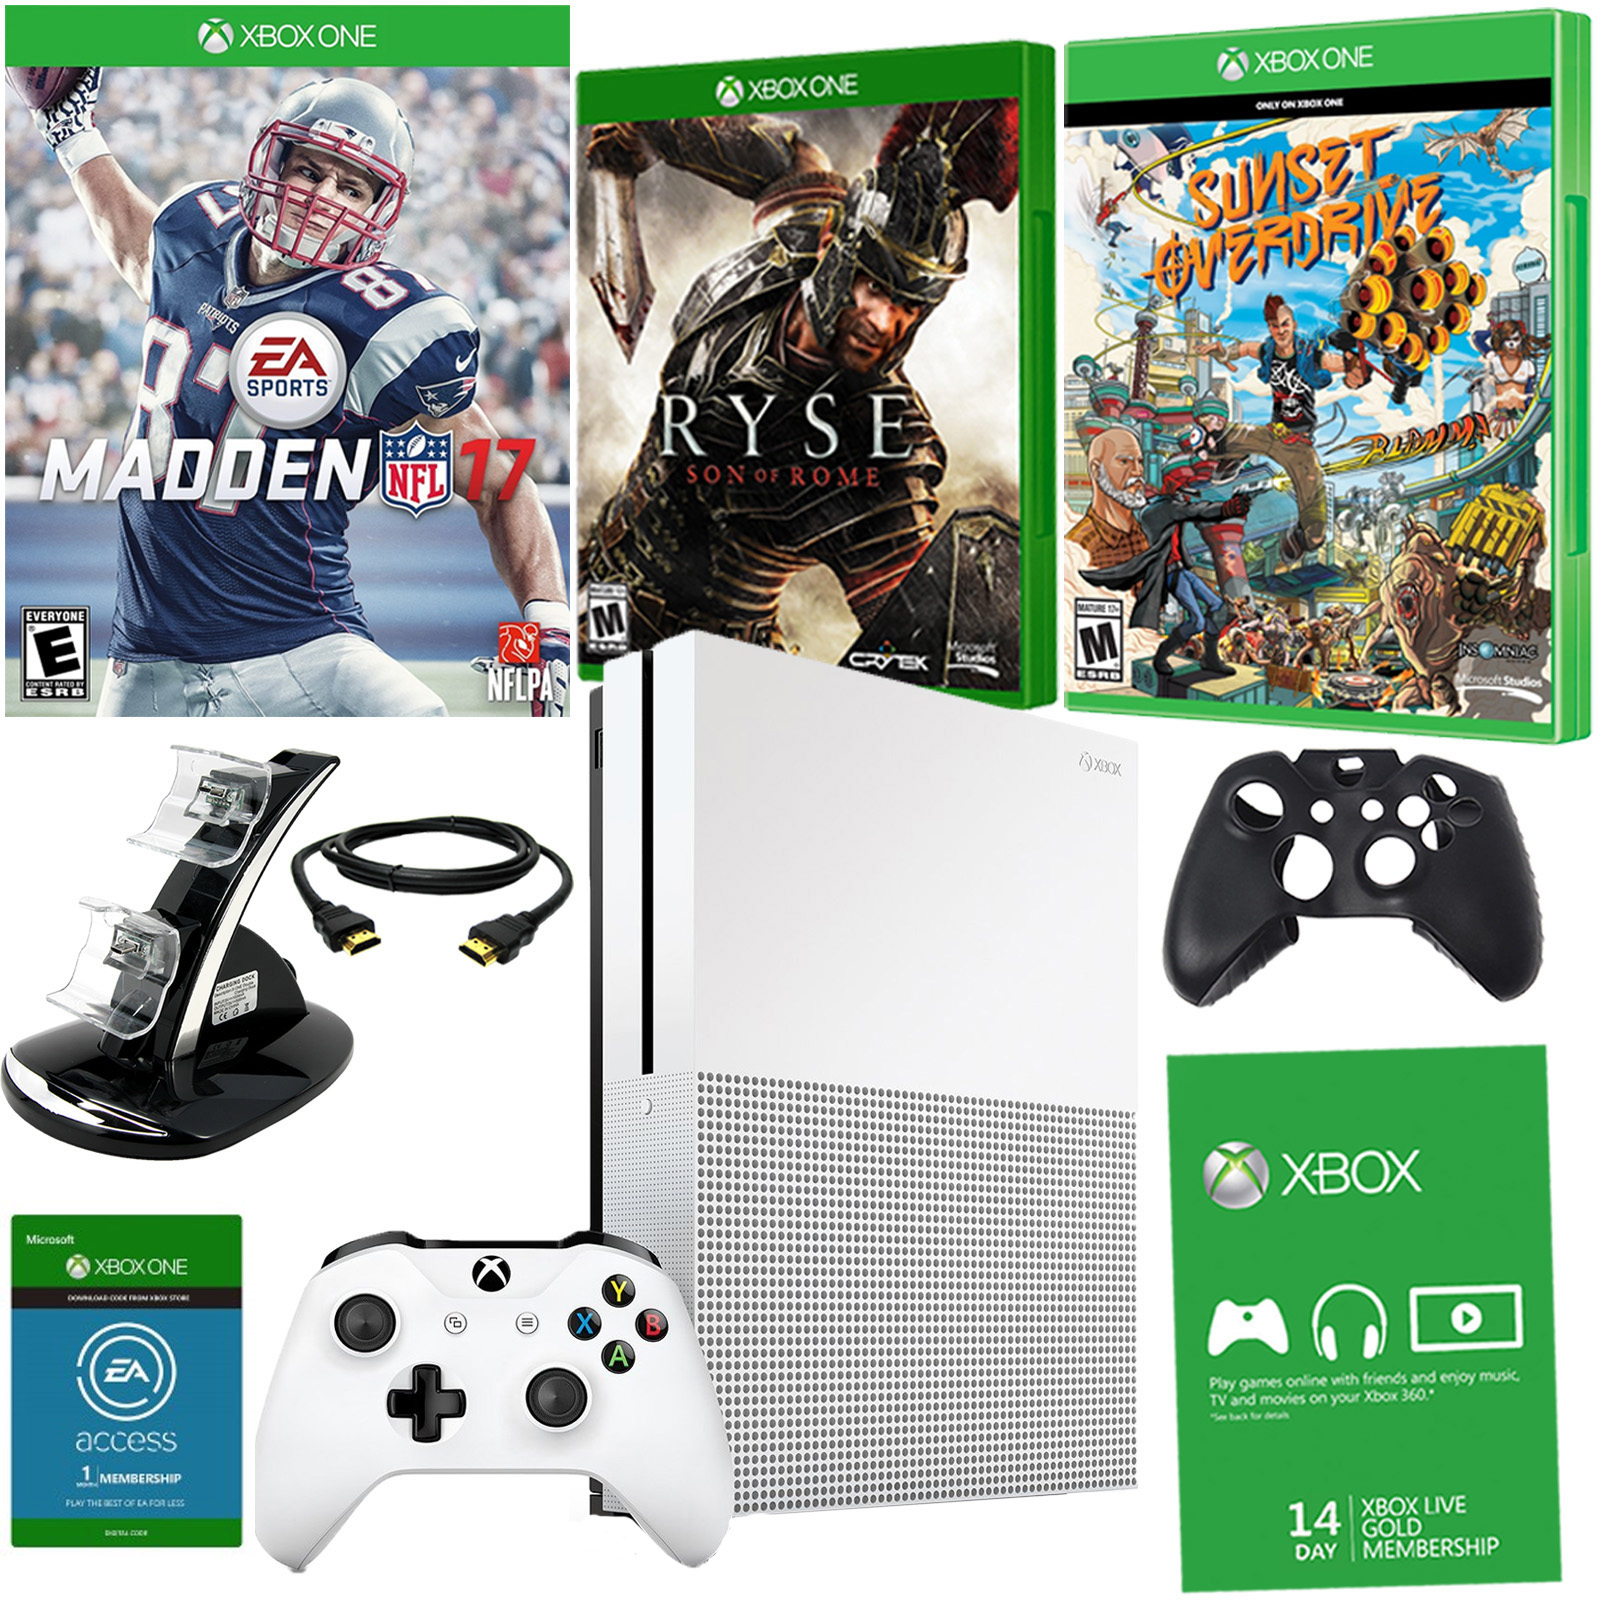 Xbox One S 1TB With NFL 2017, Ryse, and Sunset Overdrive